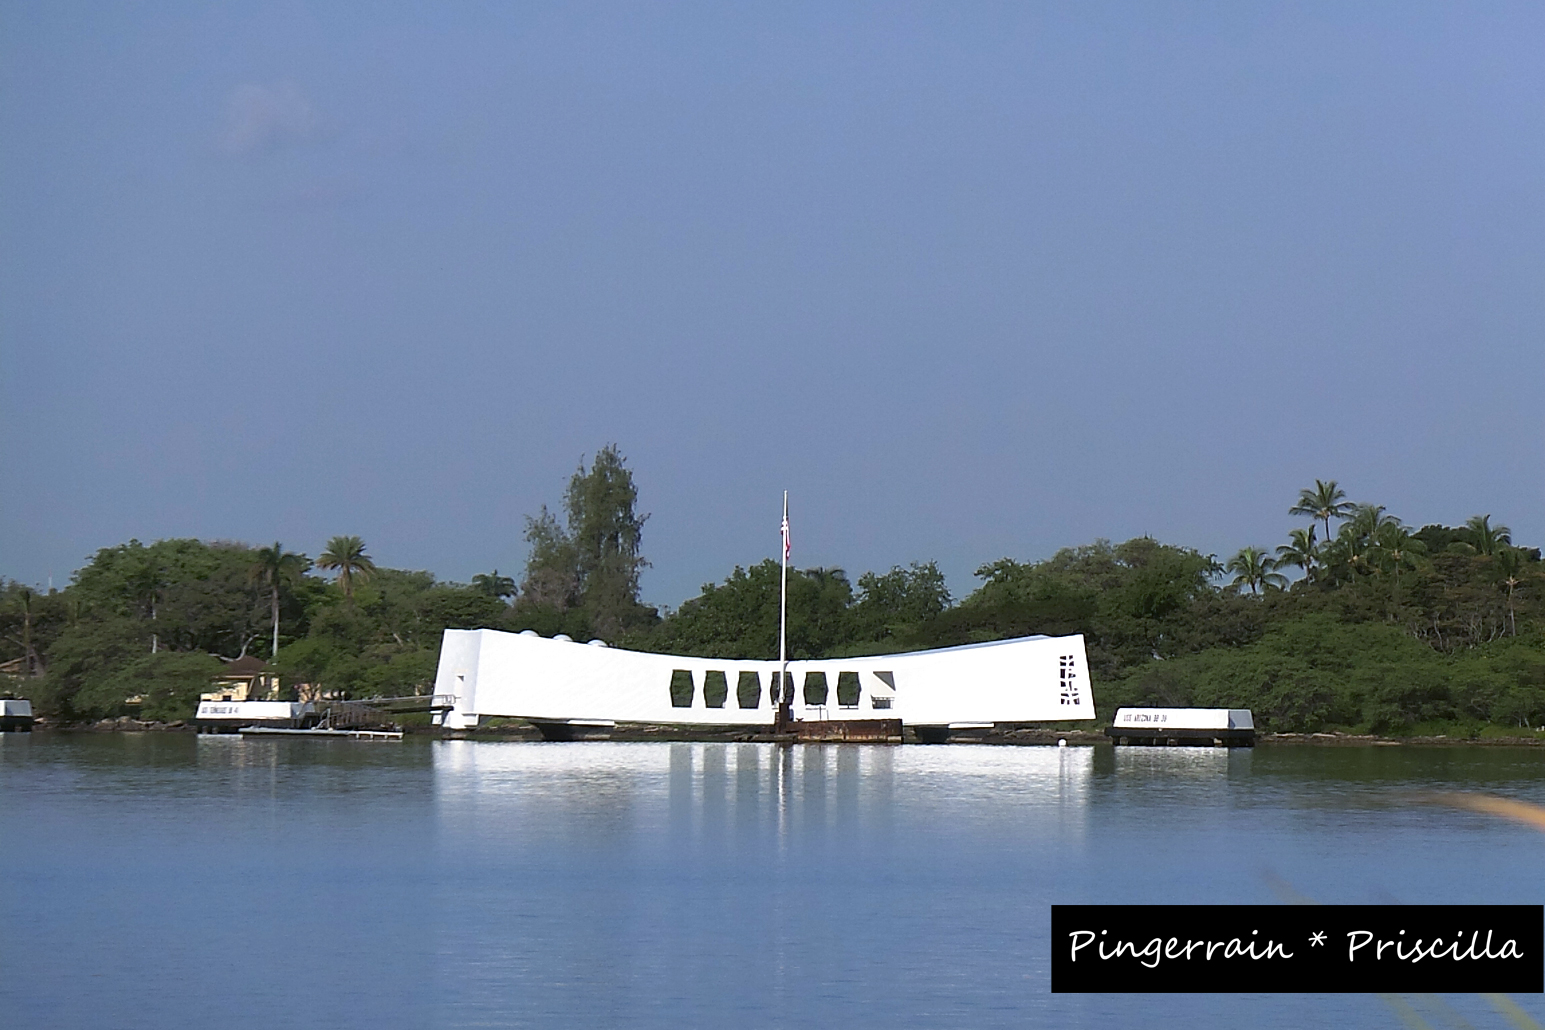 Pearl Harbour National Park & USS Arizona Memorial: War History in Perspective